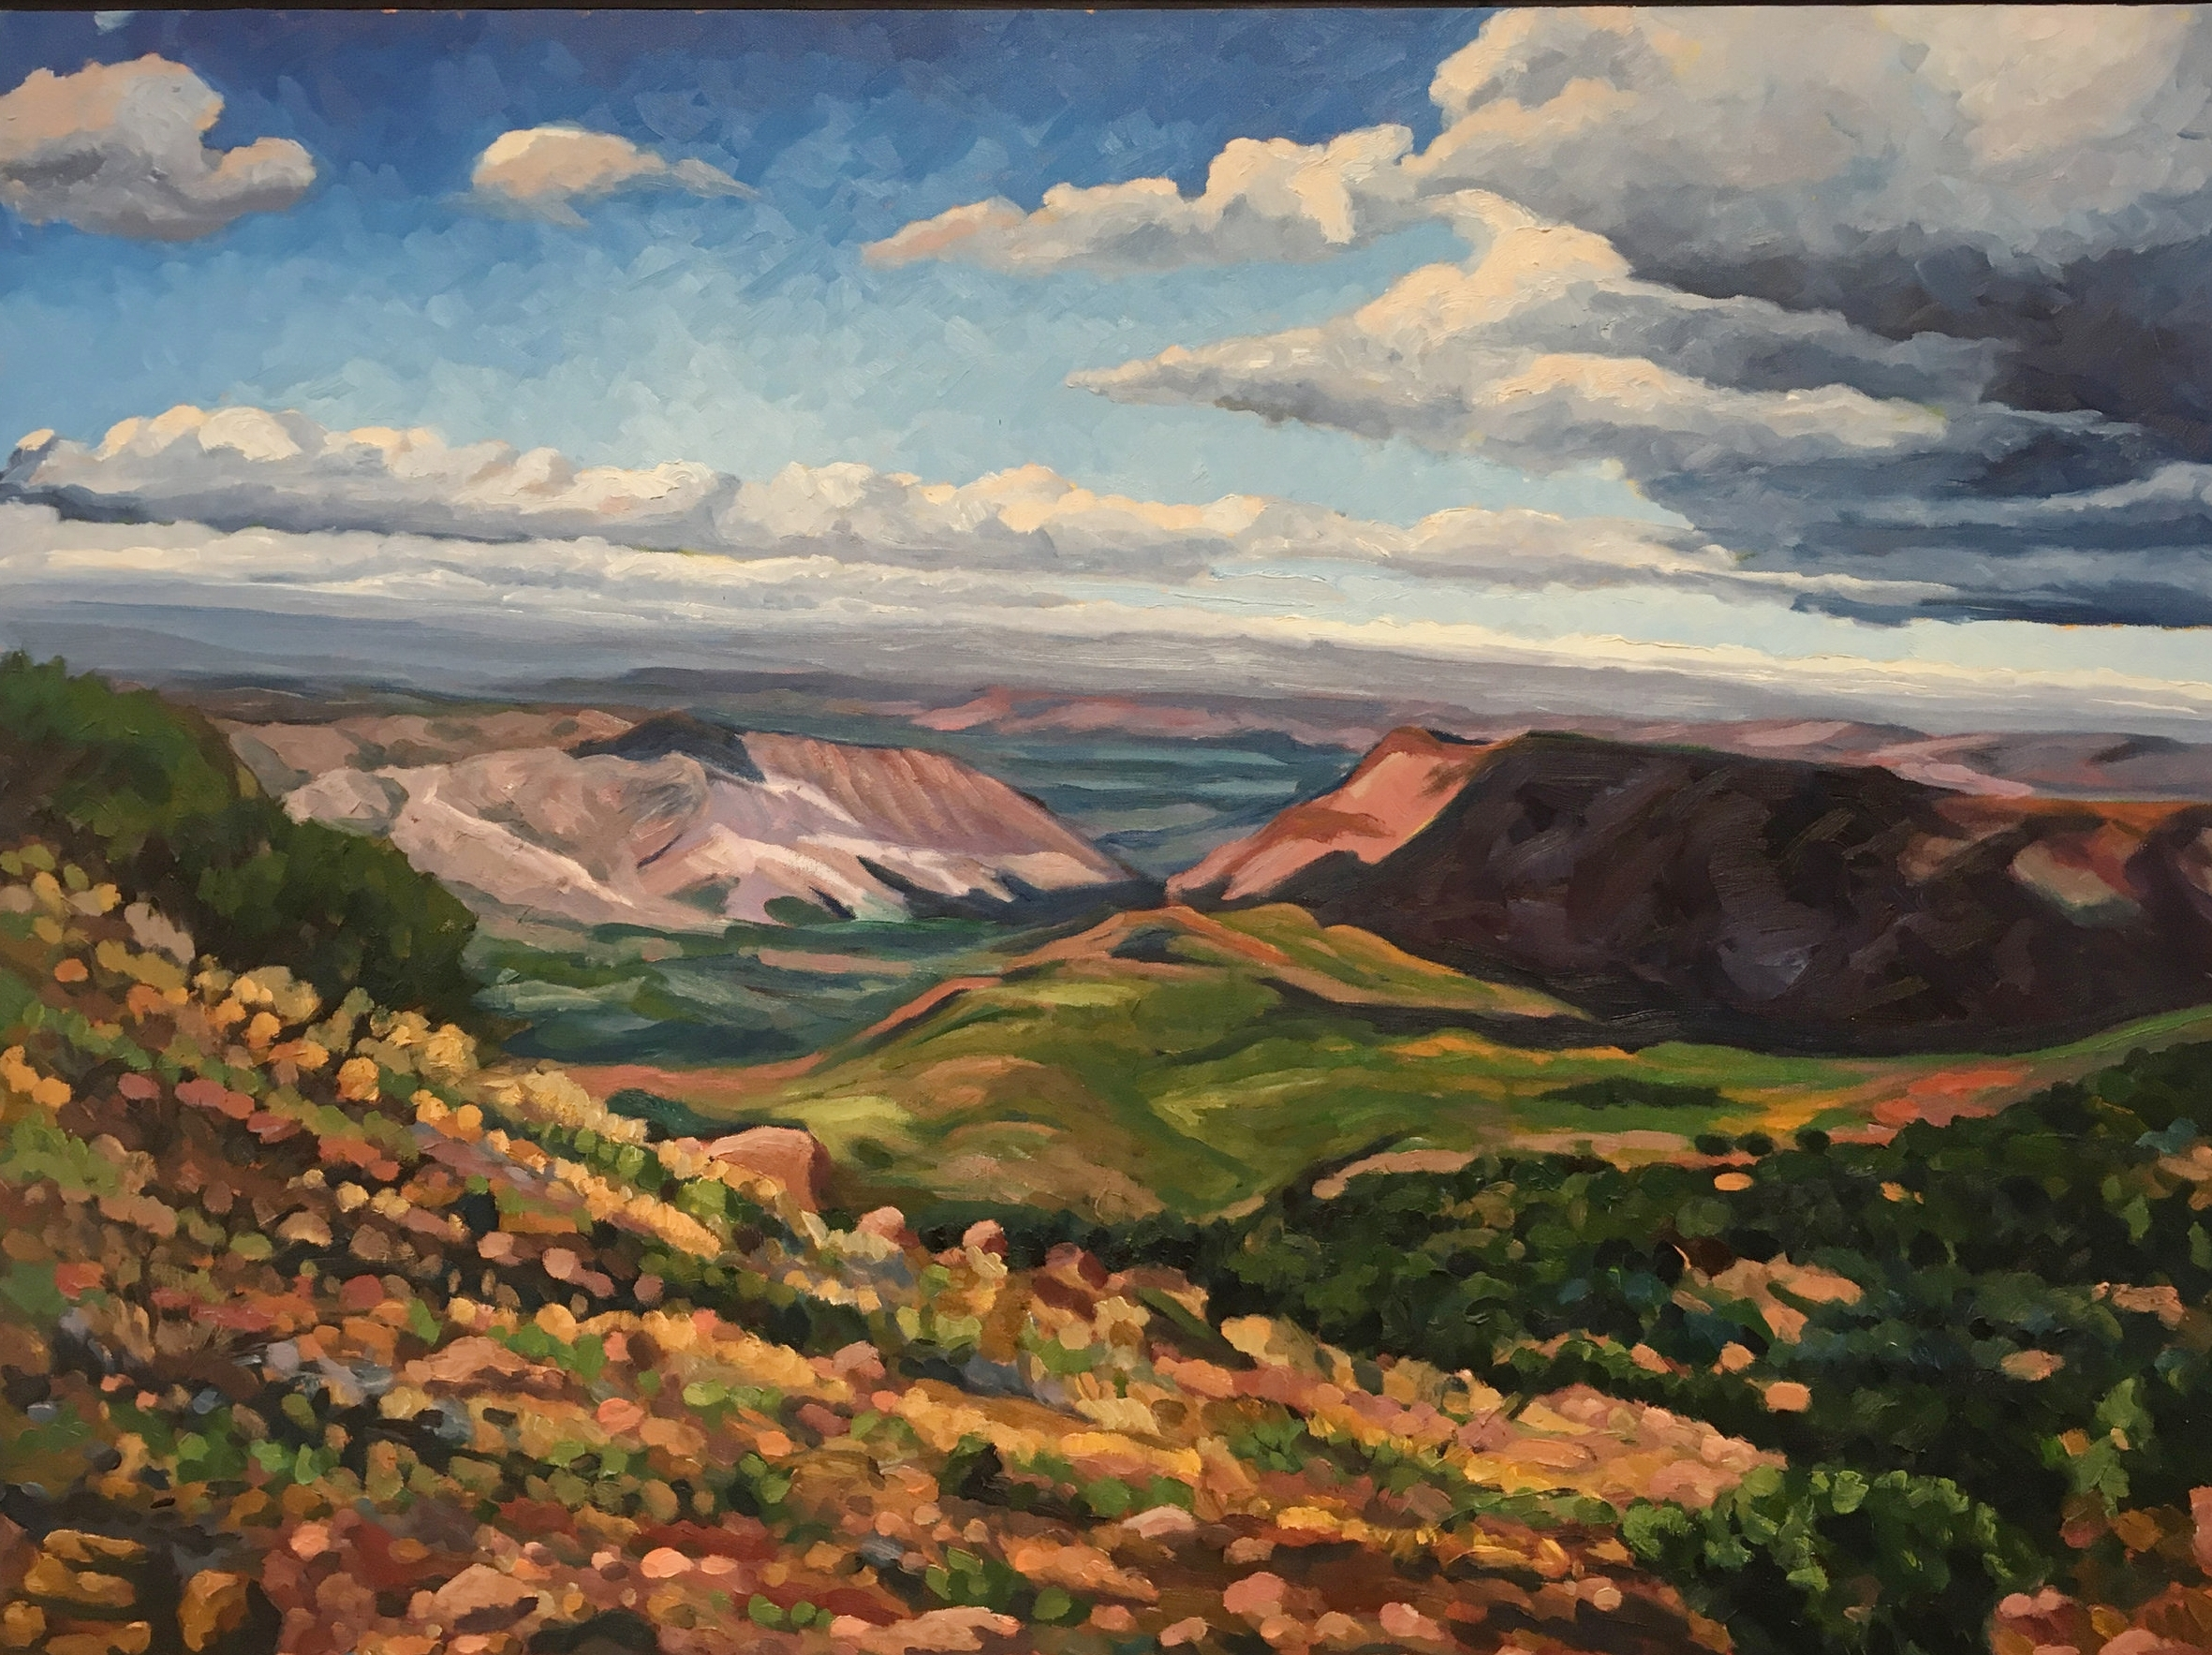 Across The Valley  30x40  Oil on Canvas  2000